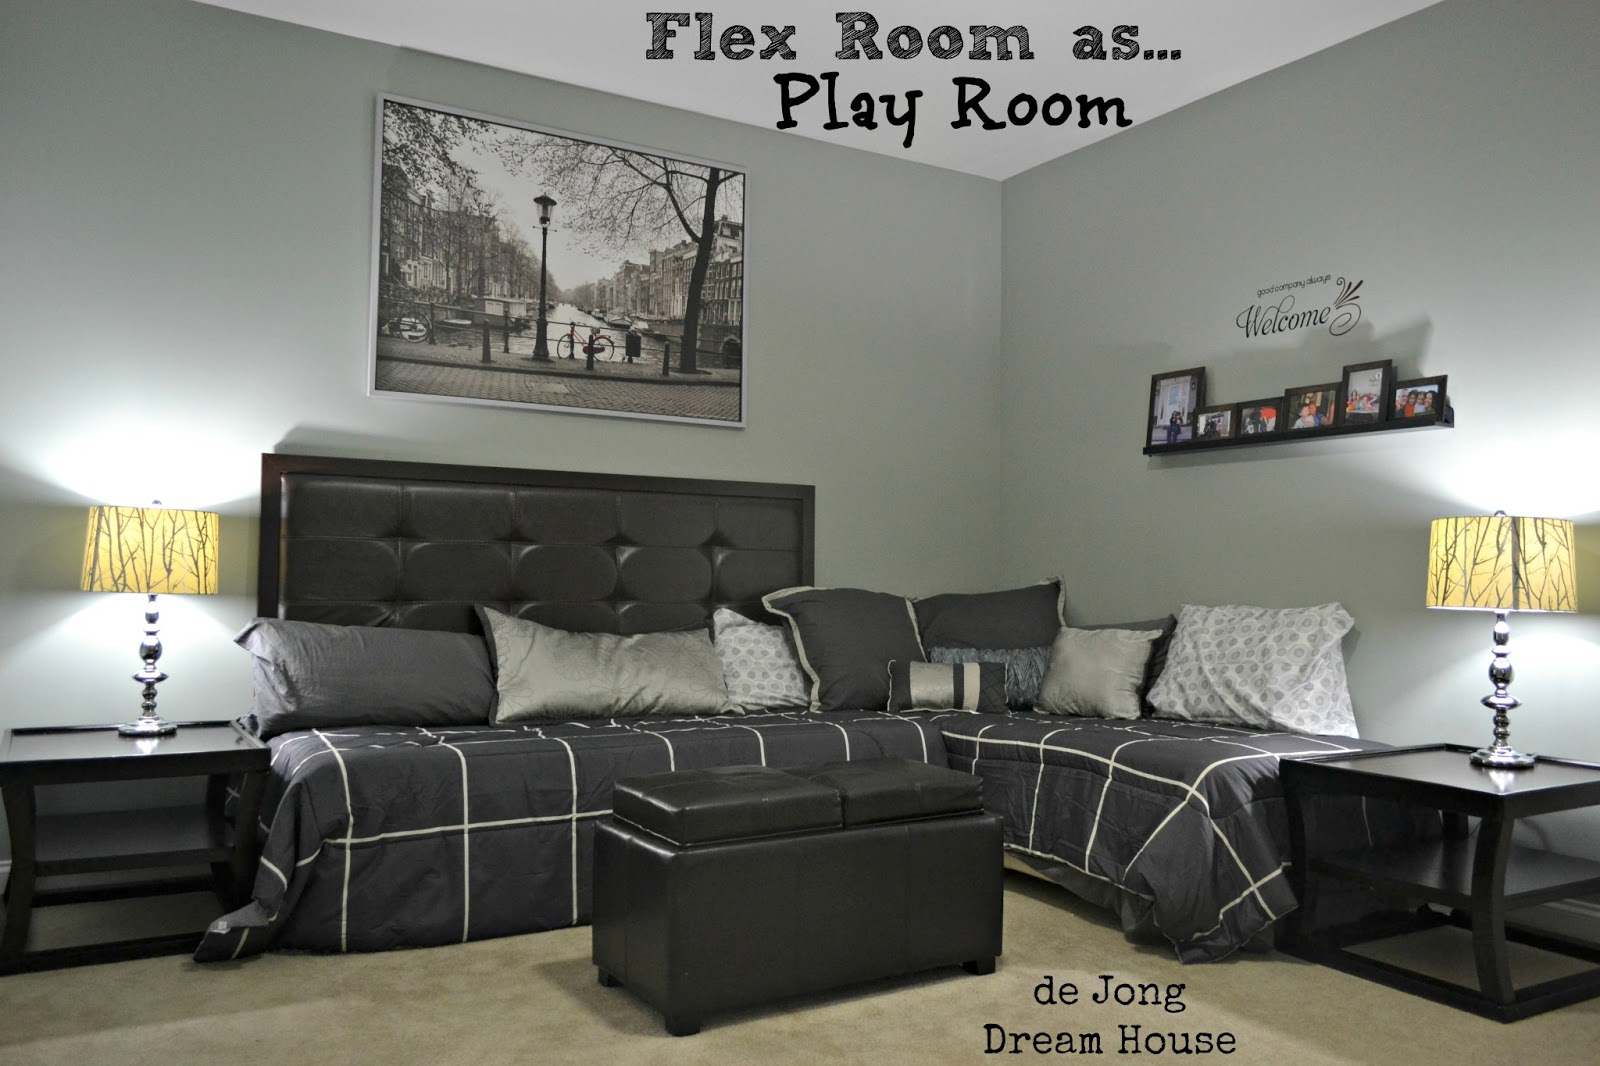 3-in-1 flex room: guest suite, play room, room for two | remodelaholic